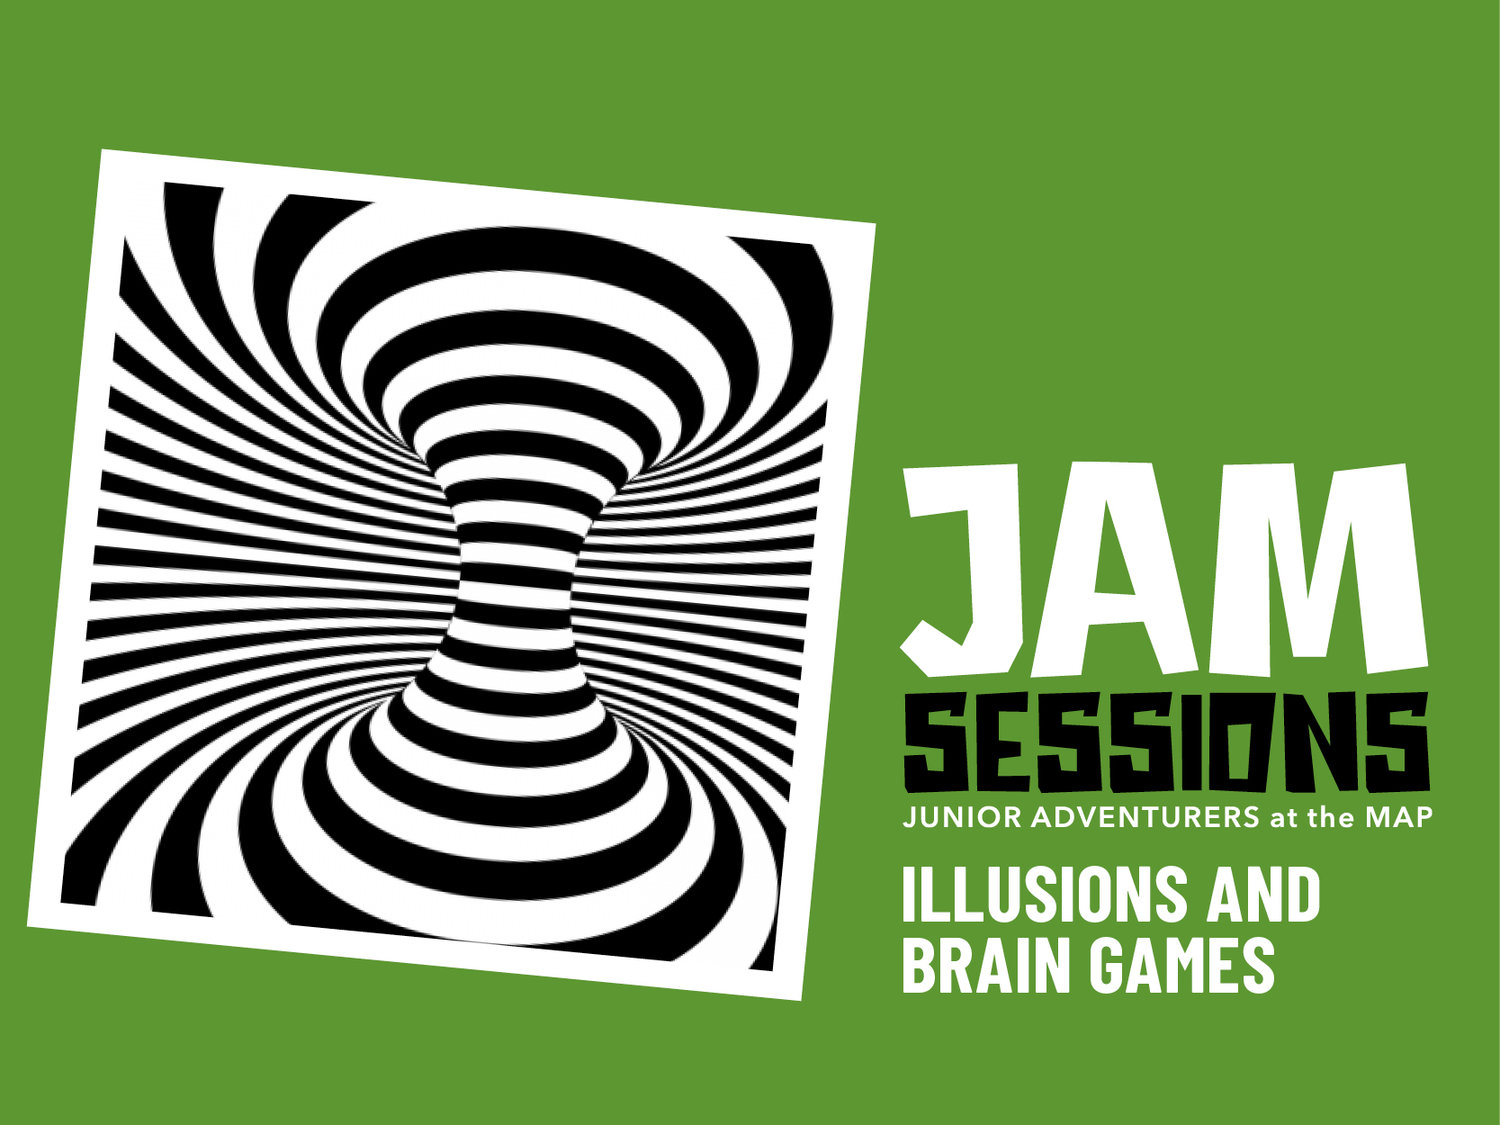 JAM Sessions + Illusions and in Games — Museum at Praireifire on psychology map, war map, religion map, death map, nature map, friendship map, glitter map, drama map, sound map, spirituality map, science map, consciousness map, delirium map, world map, happiness map, disney fairies map, stage map, poetry map, feelings map,